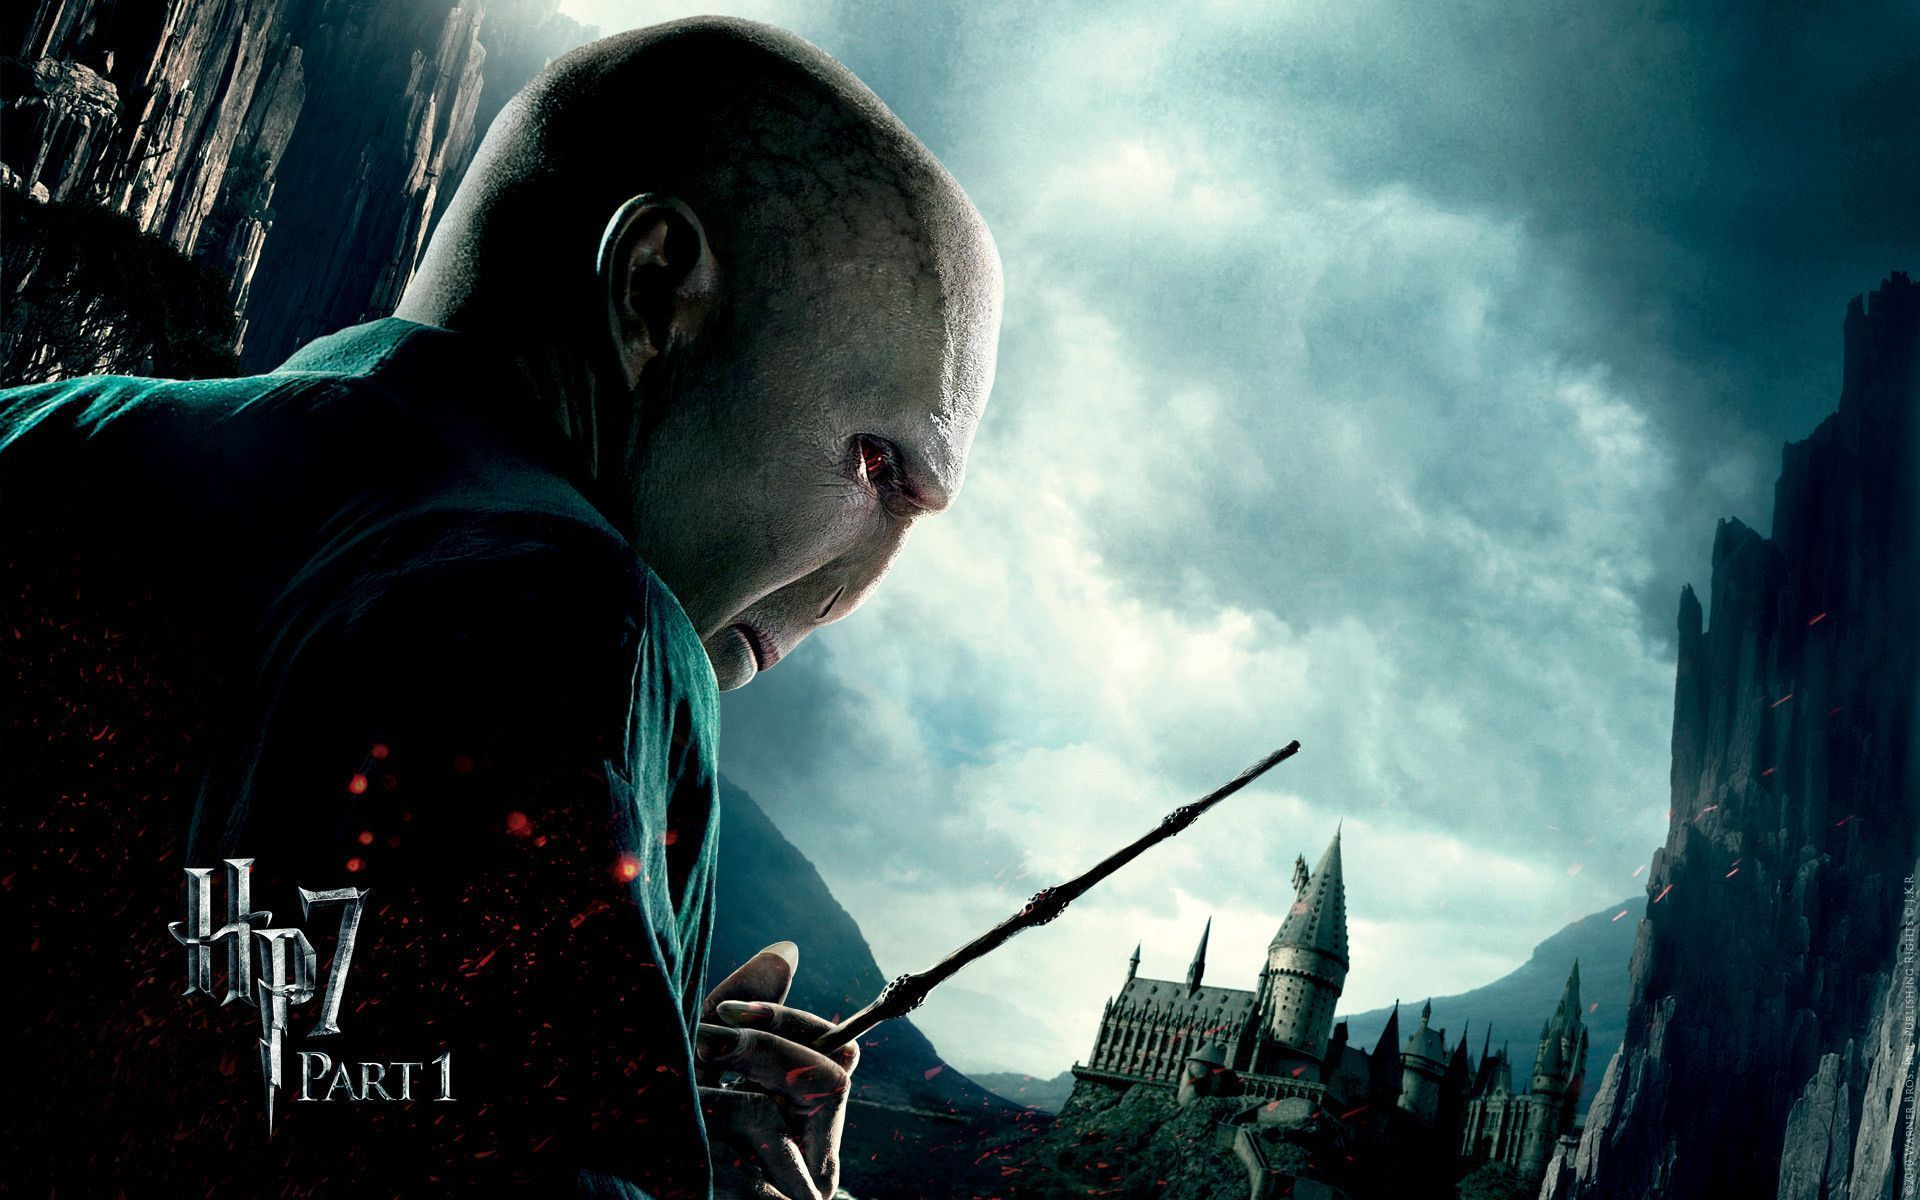 xpx lord voldemort| wallpapers for desktop | pinterest | wallpaper